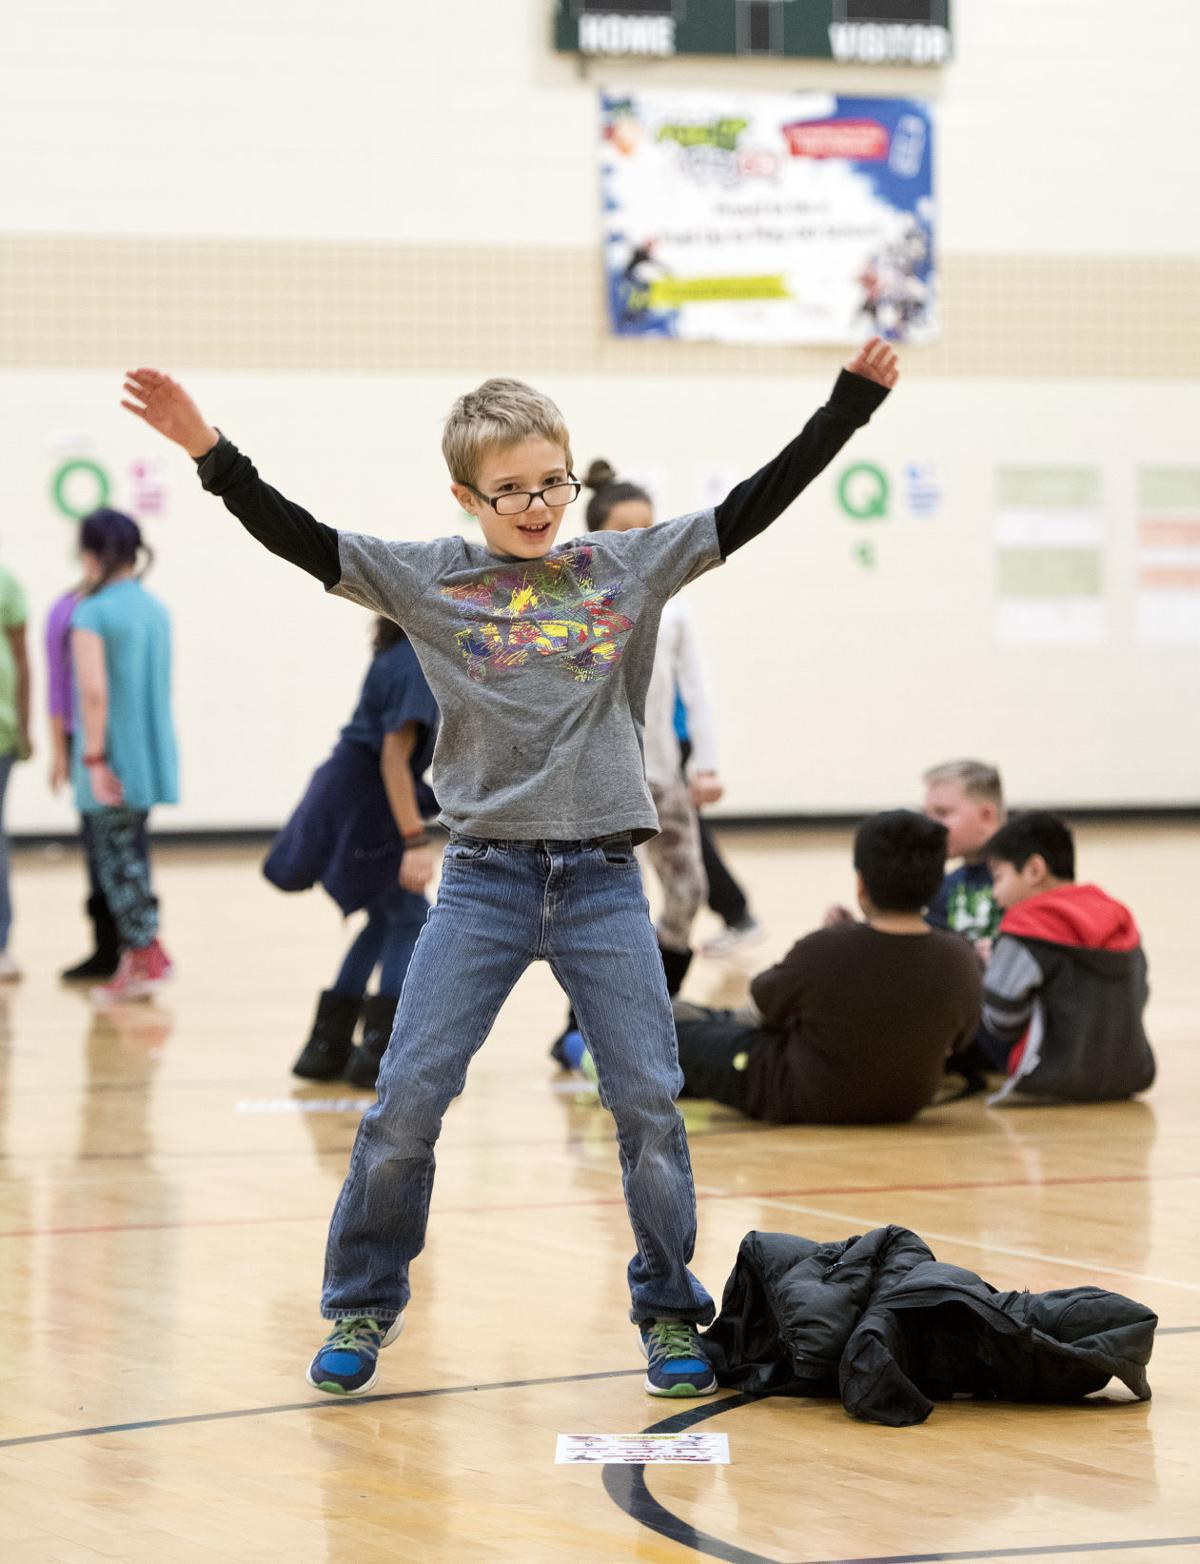 Teaching math and reading in gym class COVER SHOT